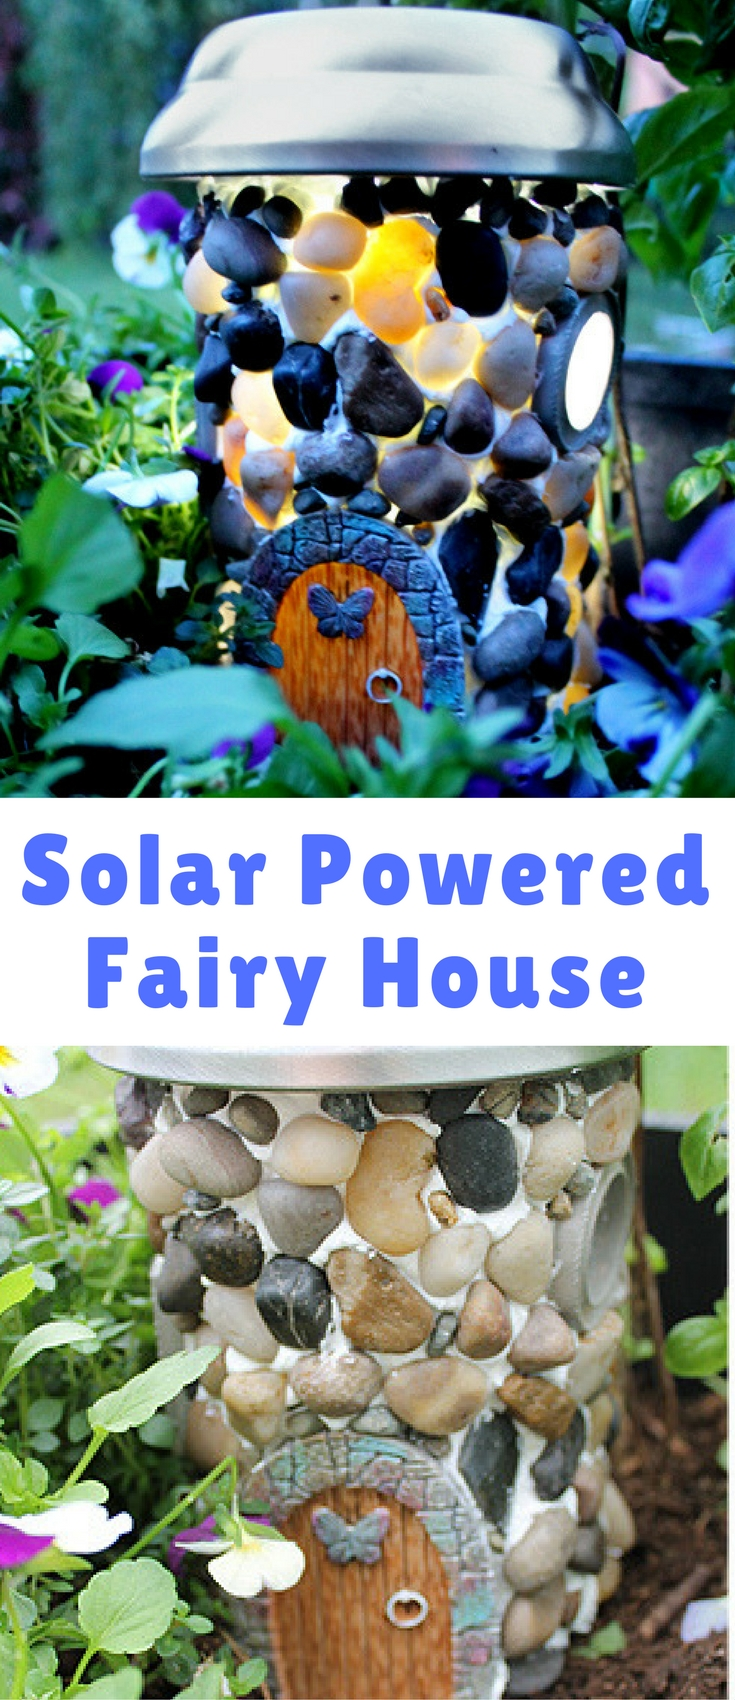 This house is made from recycled materials AND it's solar powered! The solar powered roof collects sunlight during the day - and then at night, the windows will glow! Sweet!